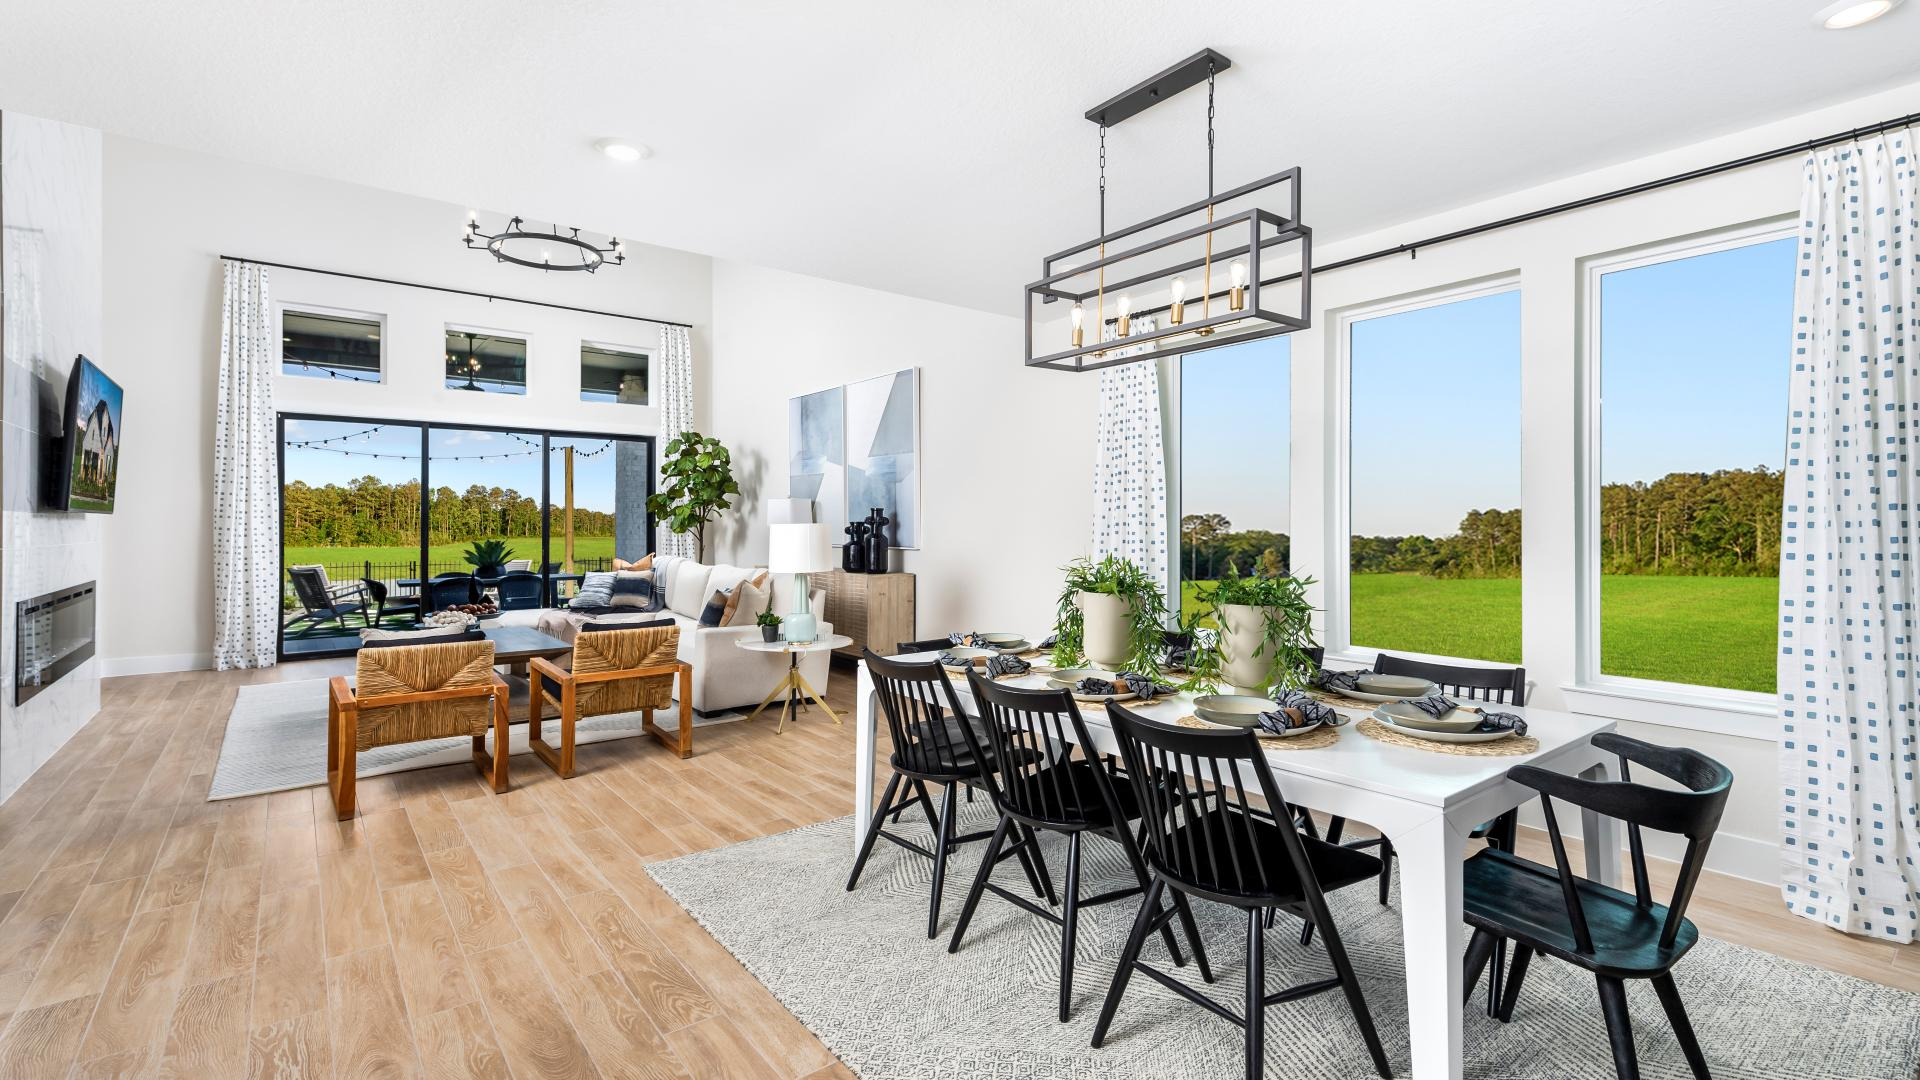 Open concept design ideal for gatherings